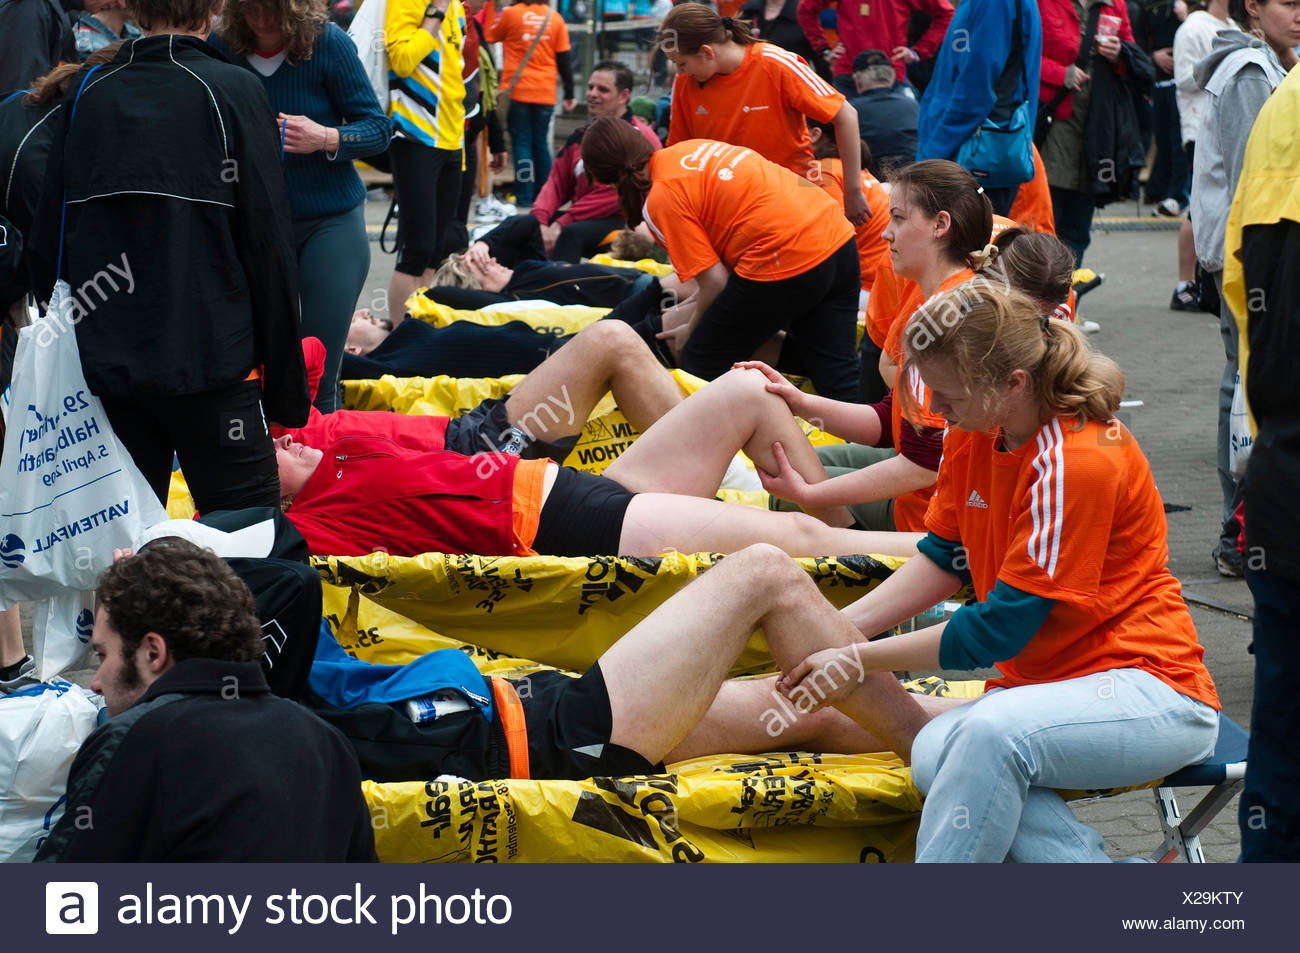 After the race runners can get massages, half marathon with over 25, 000 runners and wheelchair users, Berlin, Germany, Europe - Stock Image